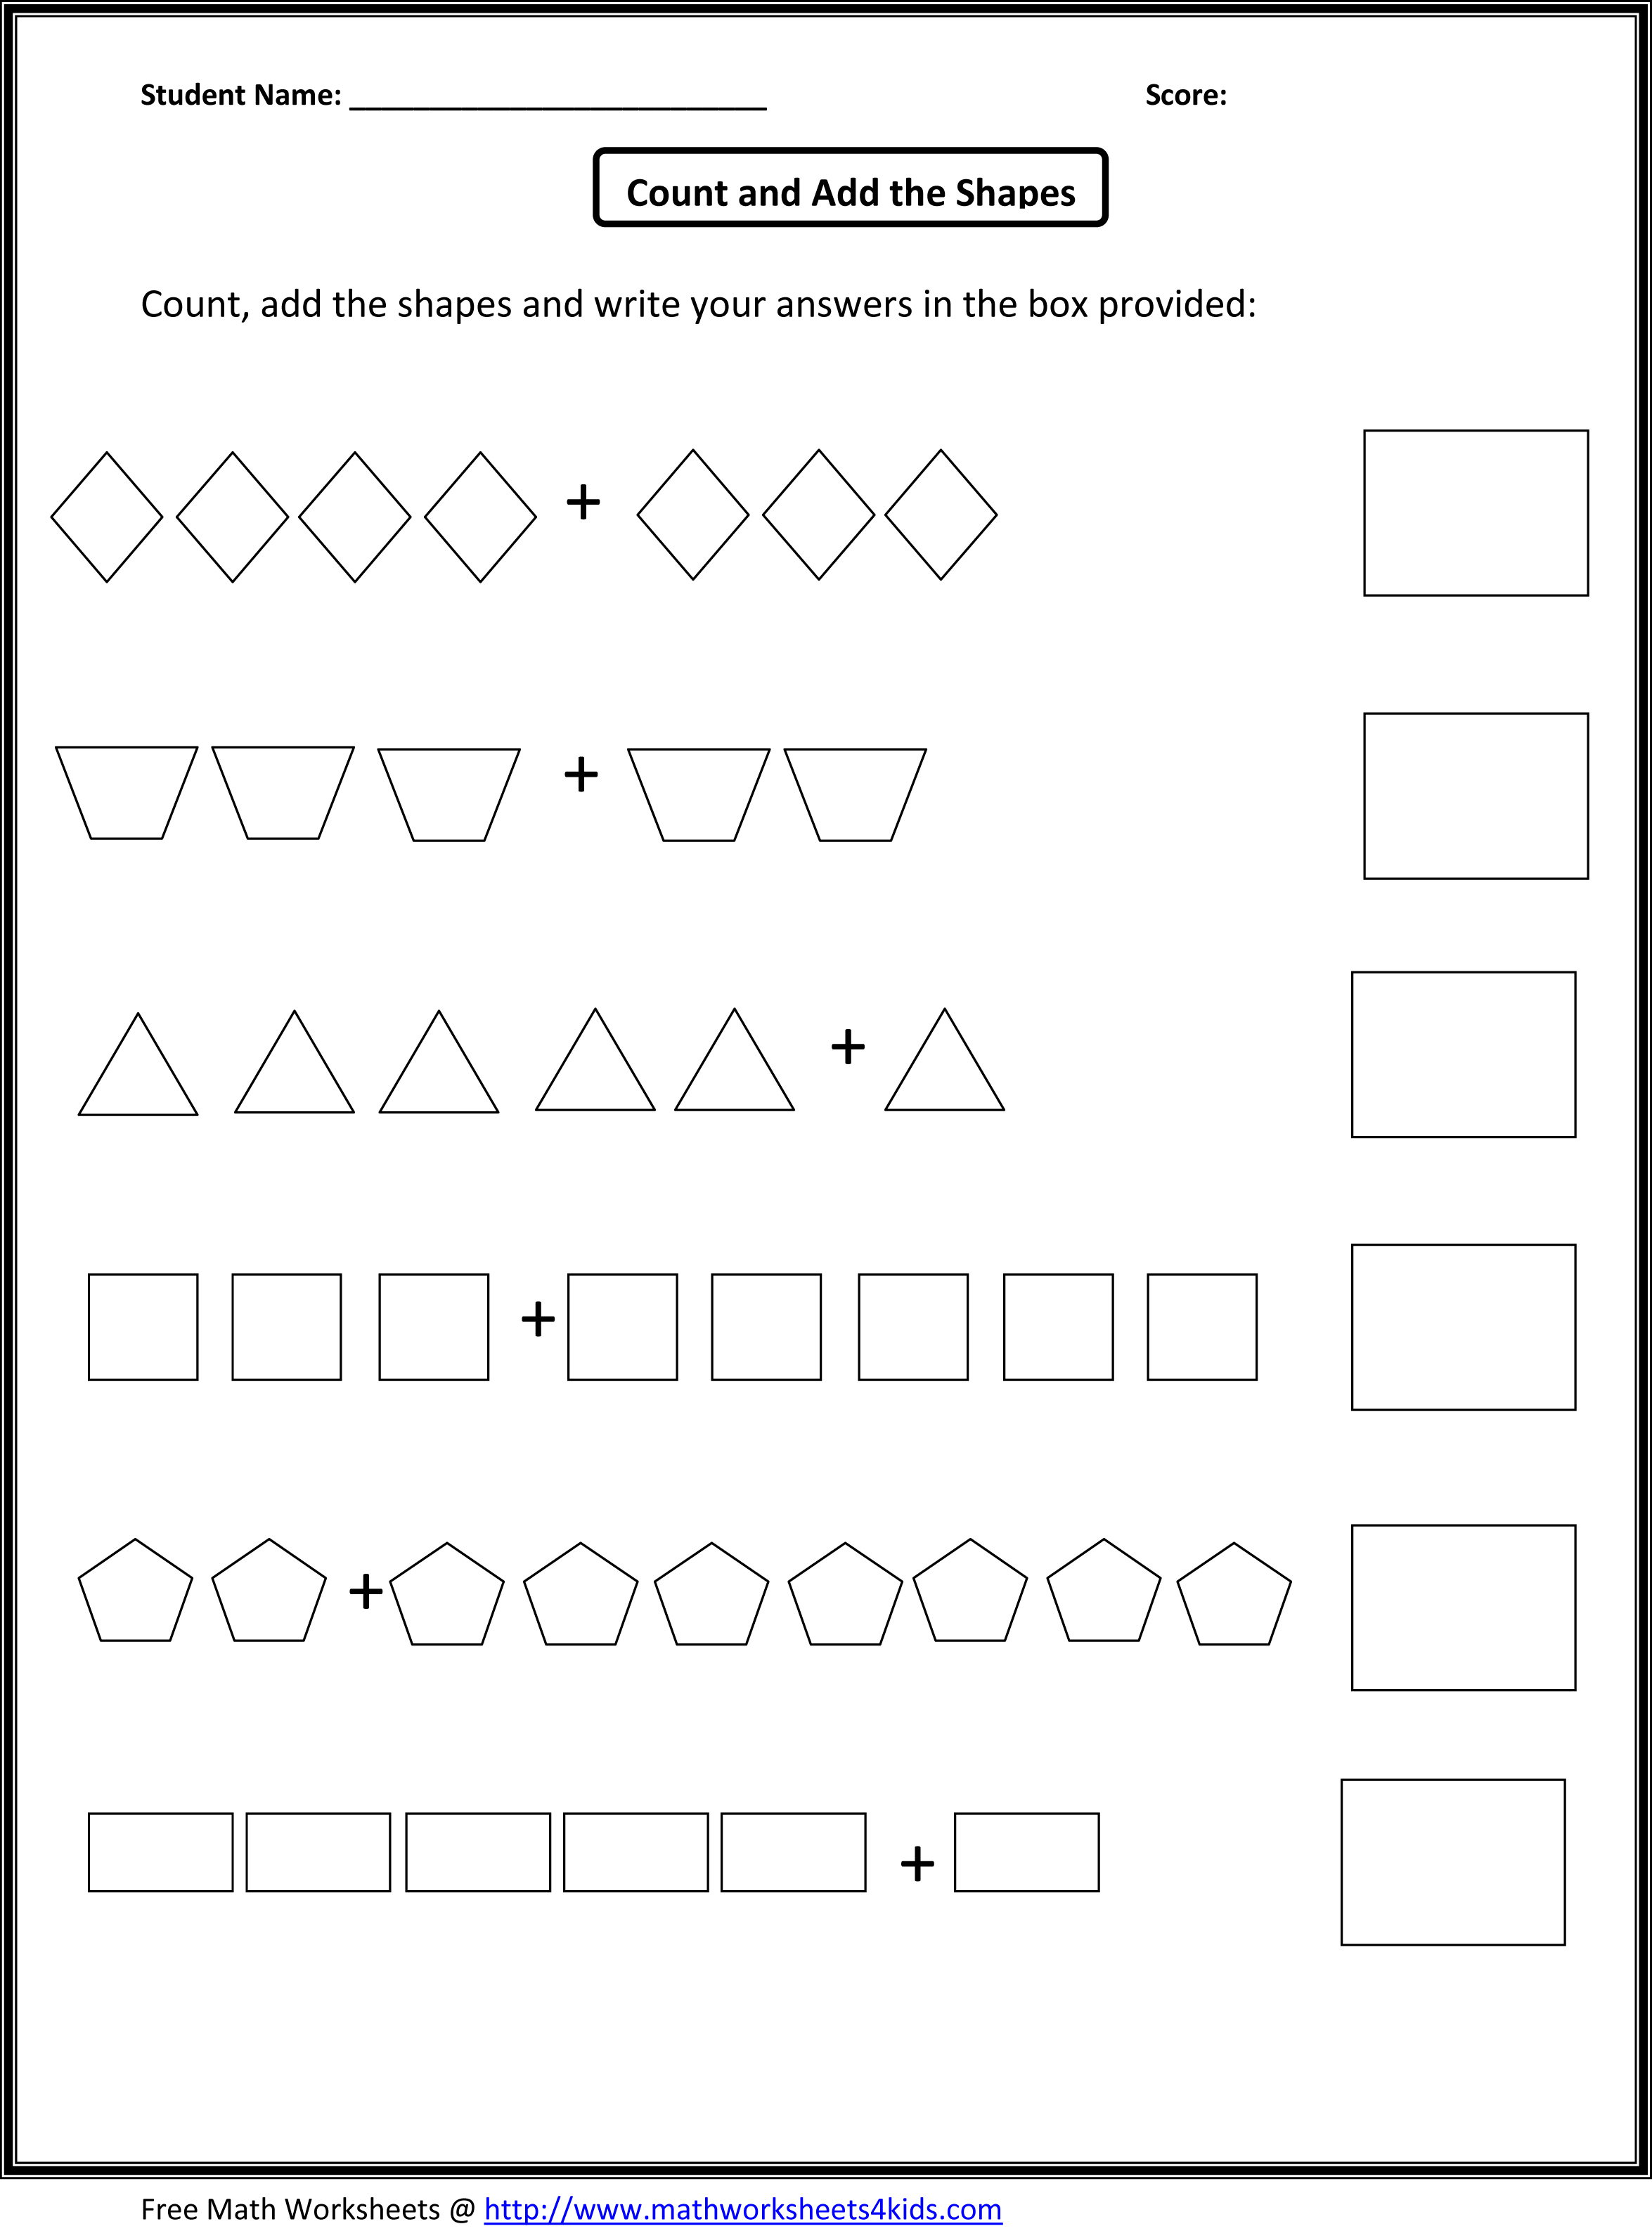 12 Best Images Of To Add Counting On Worksheets